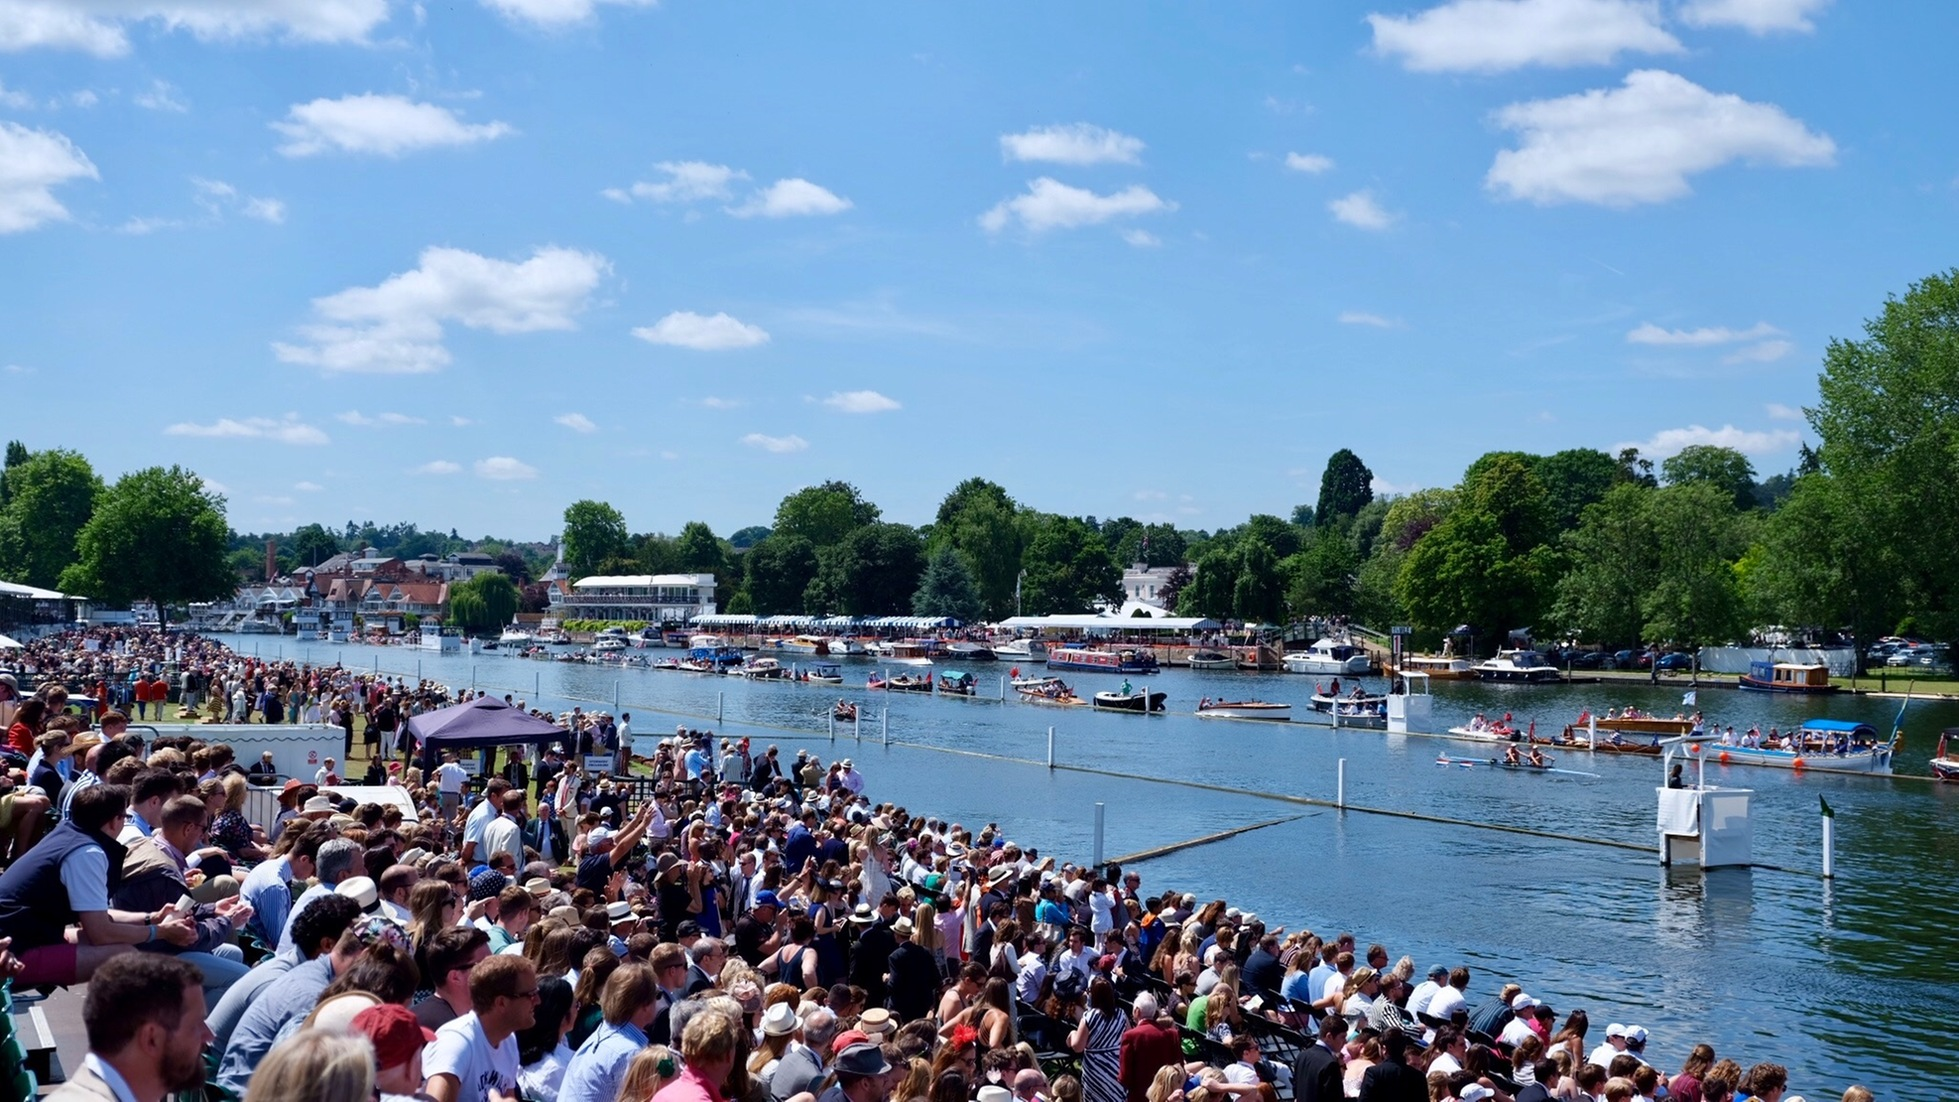 Men's Crew heading to England's Henley Regatta!